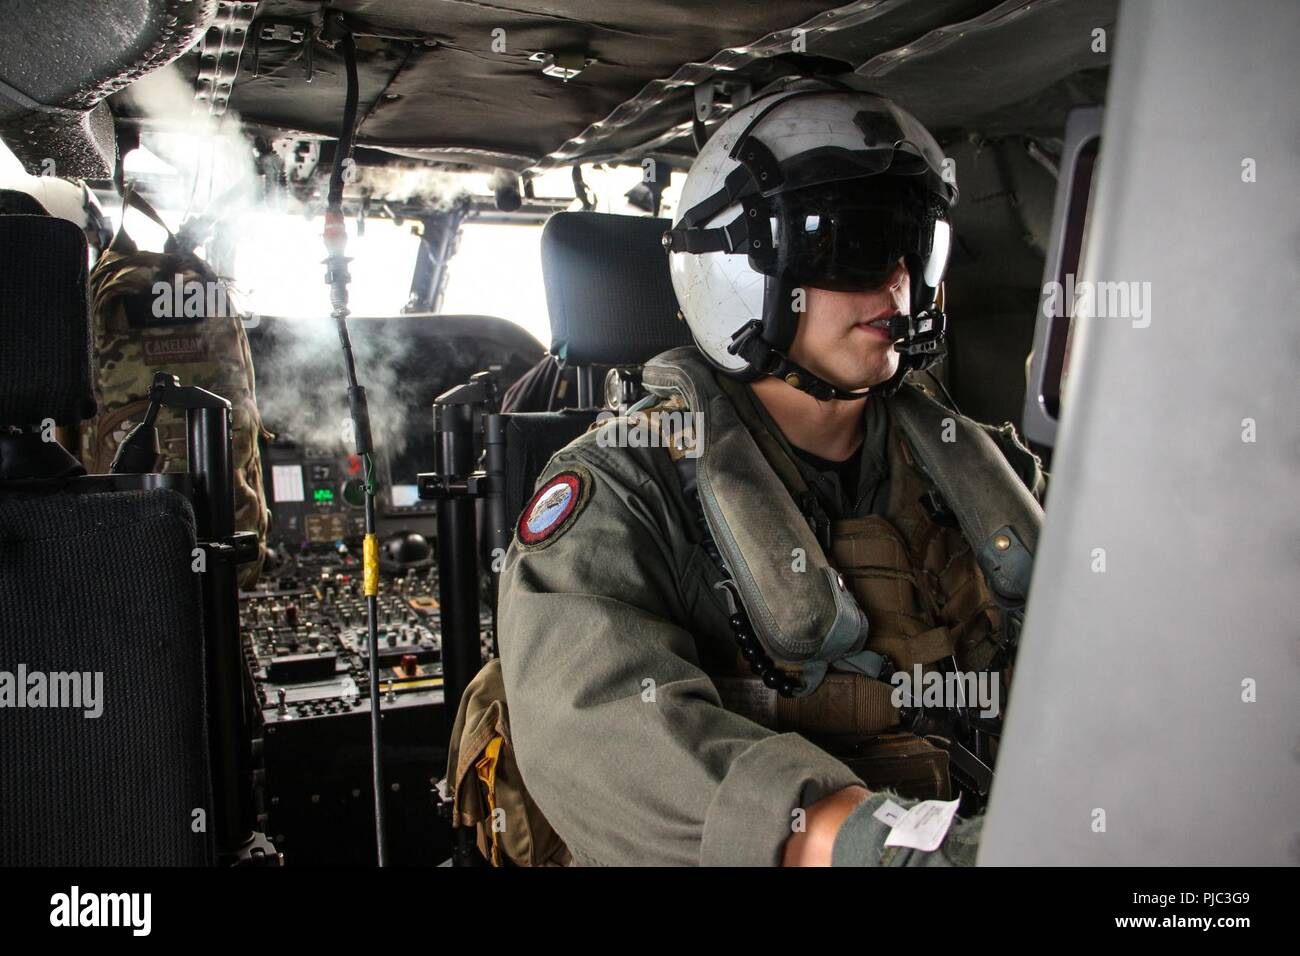 PACIFIC OCEAN (July 12, 2018) Naval Aircrewman (Helicopter) 1st Class Alejandro Vega, assigned to the 'Blackjacks' of Helicopter Sea Combat Squadron (HSC) 21,  operates an Advanced Laser Mine Detection System (ALMDS) console aboard an MH-60S Sea Hawk helicopter during Rim of the Pacific (RIMPAC) exercise in the Southern California area of operations. Twenty-five nations, 46 ships, five submarines, about 200 aircraft, and 25,000 personnel are participating in RIMPAC from June 27 to Aug. 2 in and around the Hawaiian Islands and Southern California. The world's largest international maritime exer - Stock Image